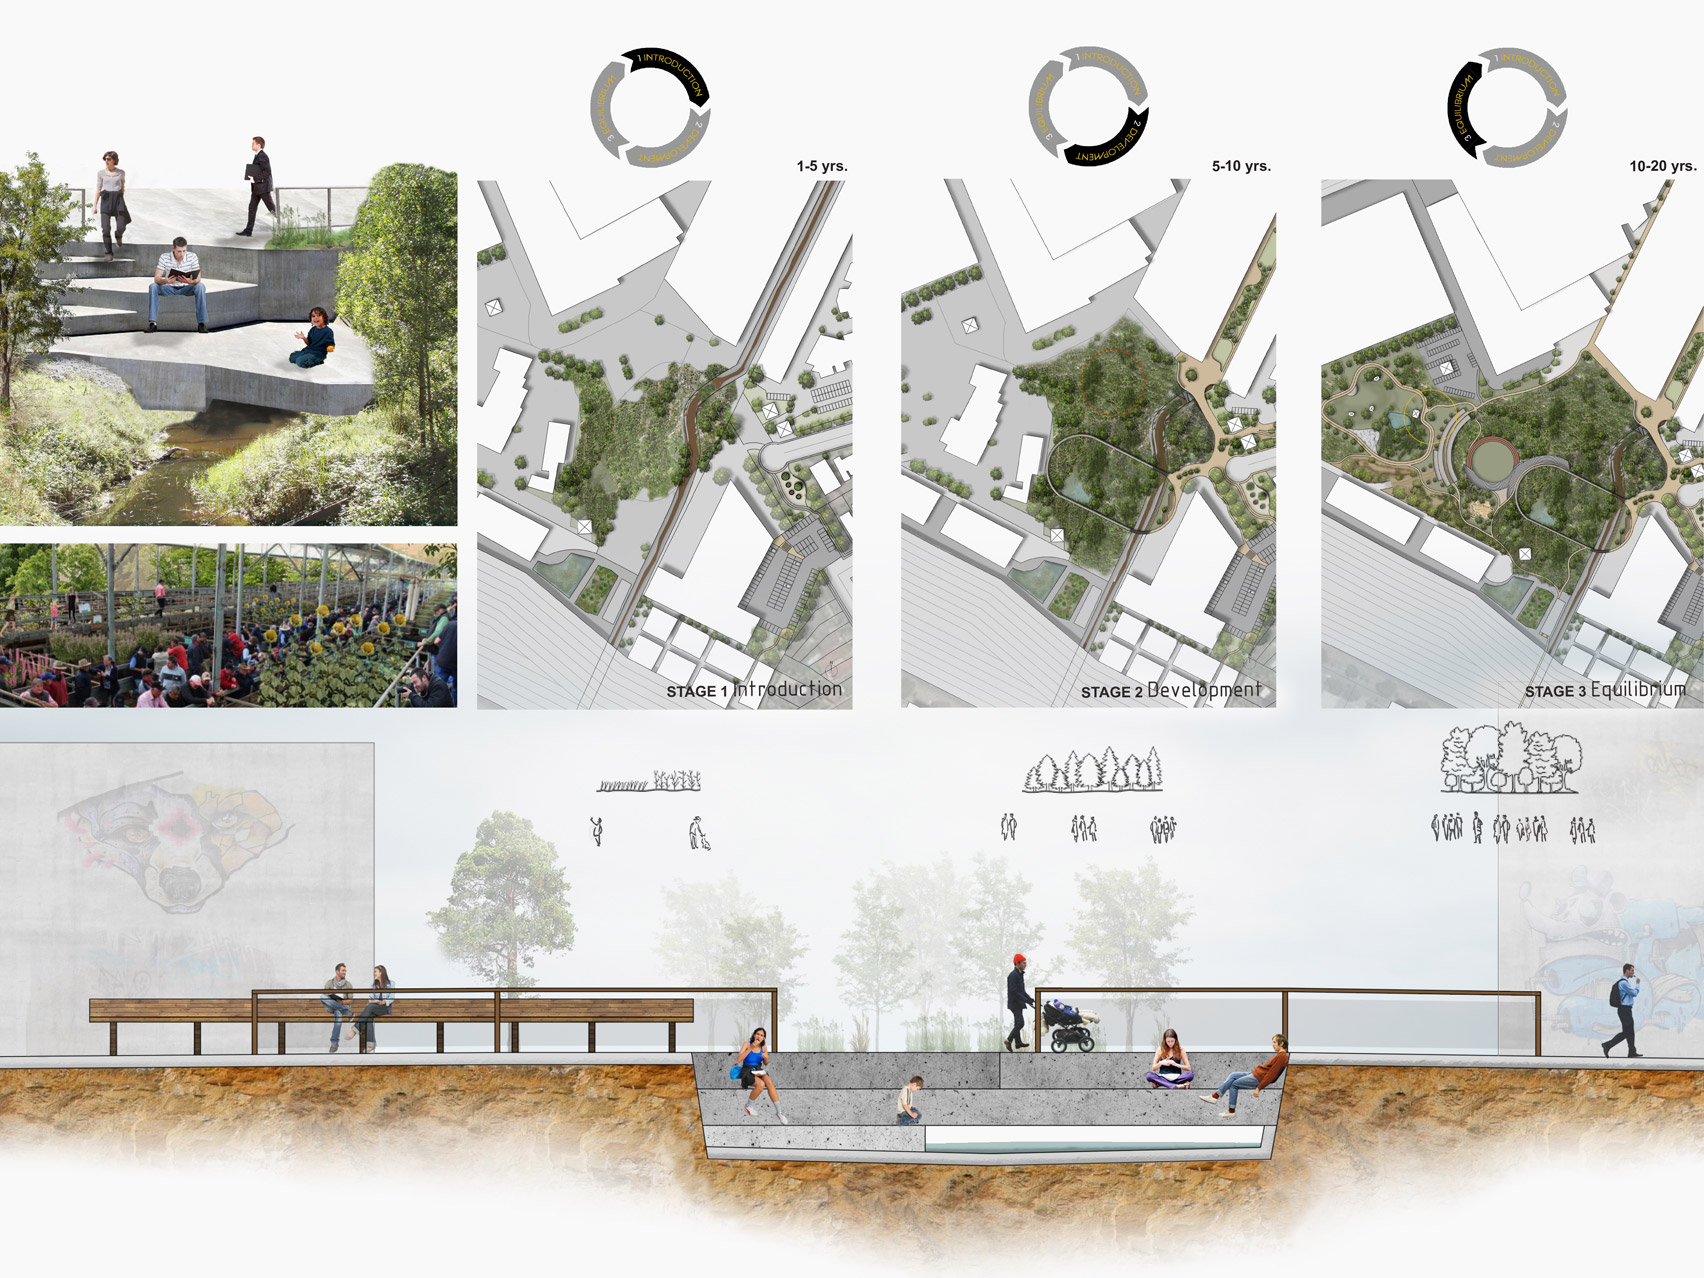 Landscape architecture drawings by UNSW Sydney student Hayley Farrell